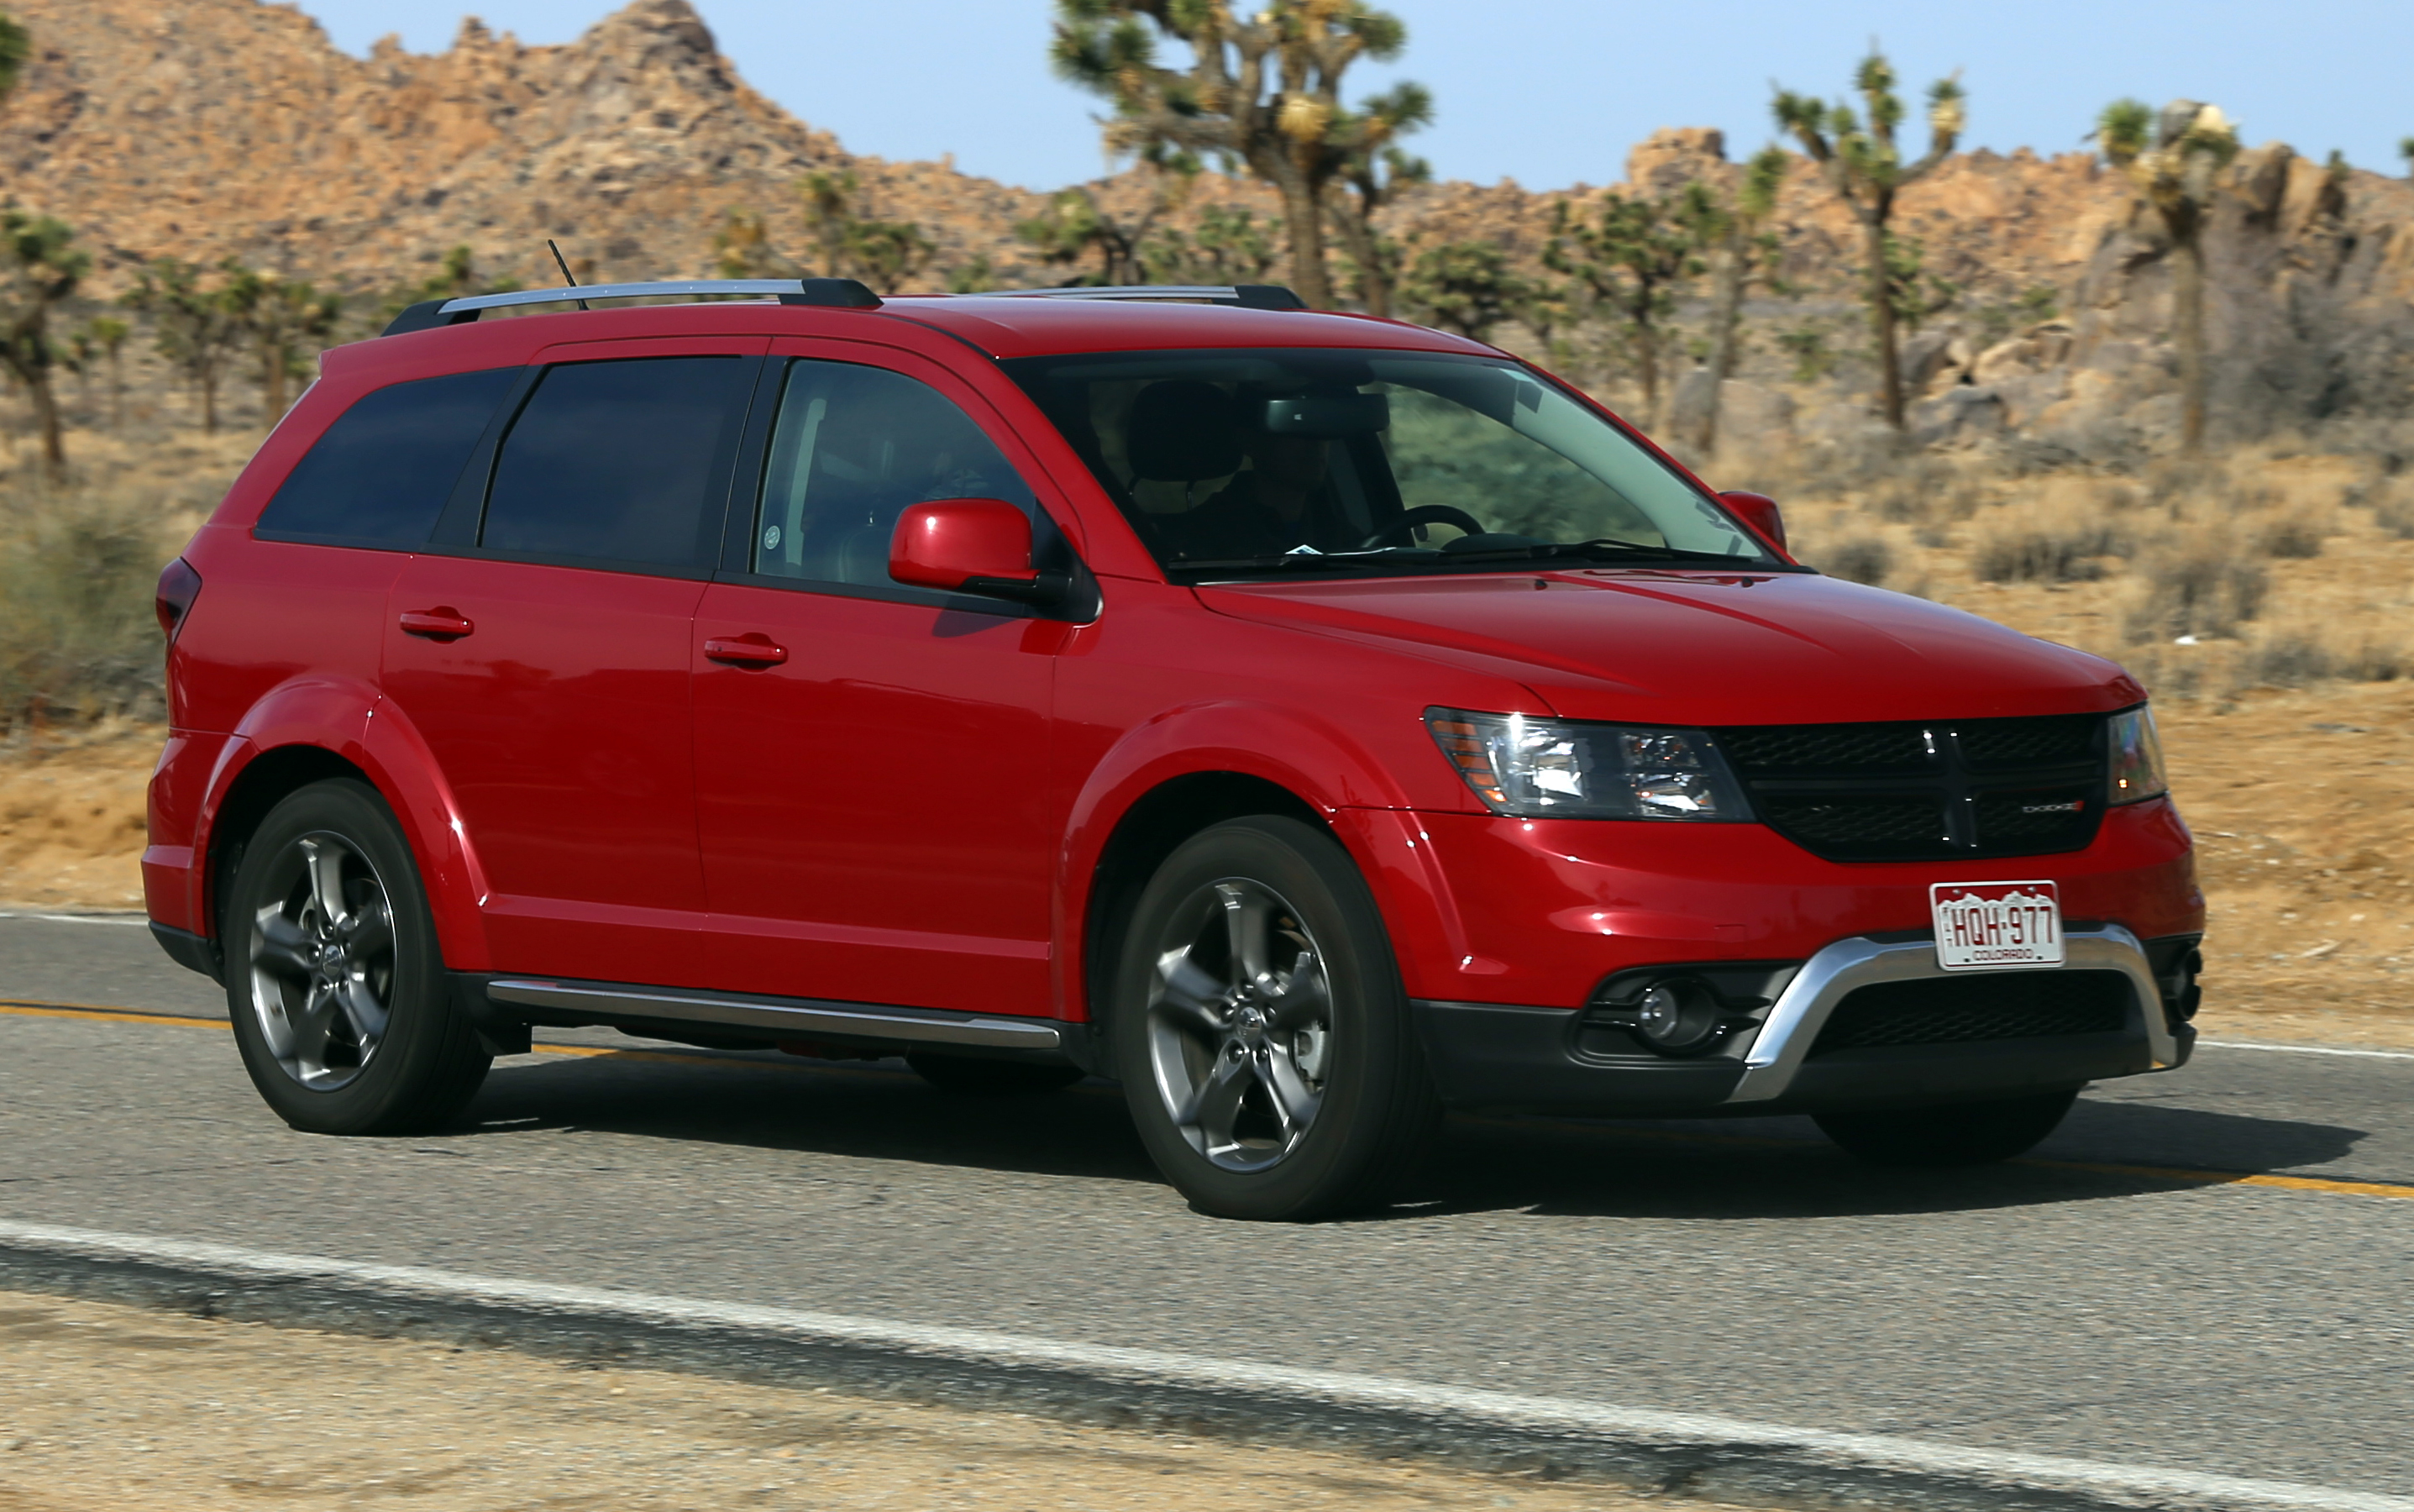 dodge journey wikipedia rh en wikipedia org 2009 dodge journey sxt service manual Dodge Warranty